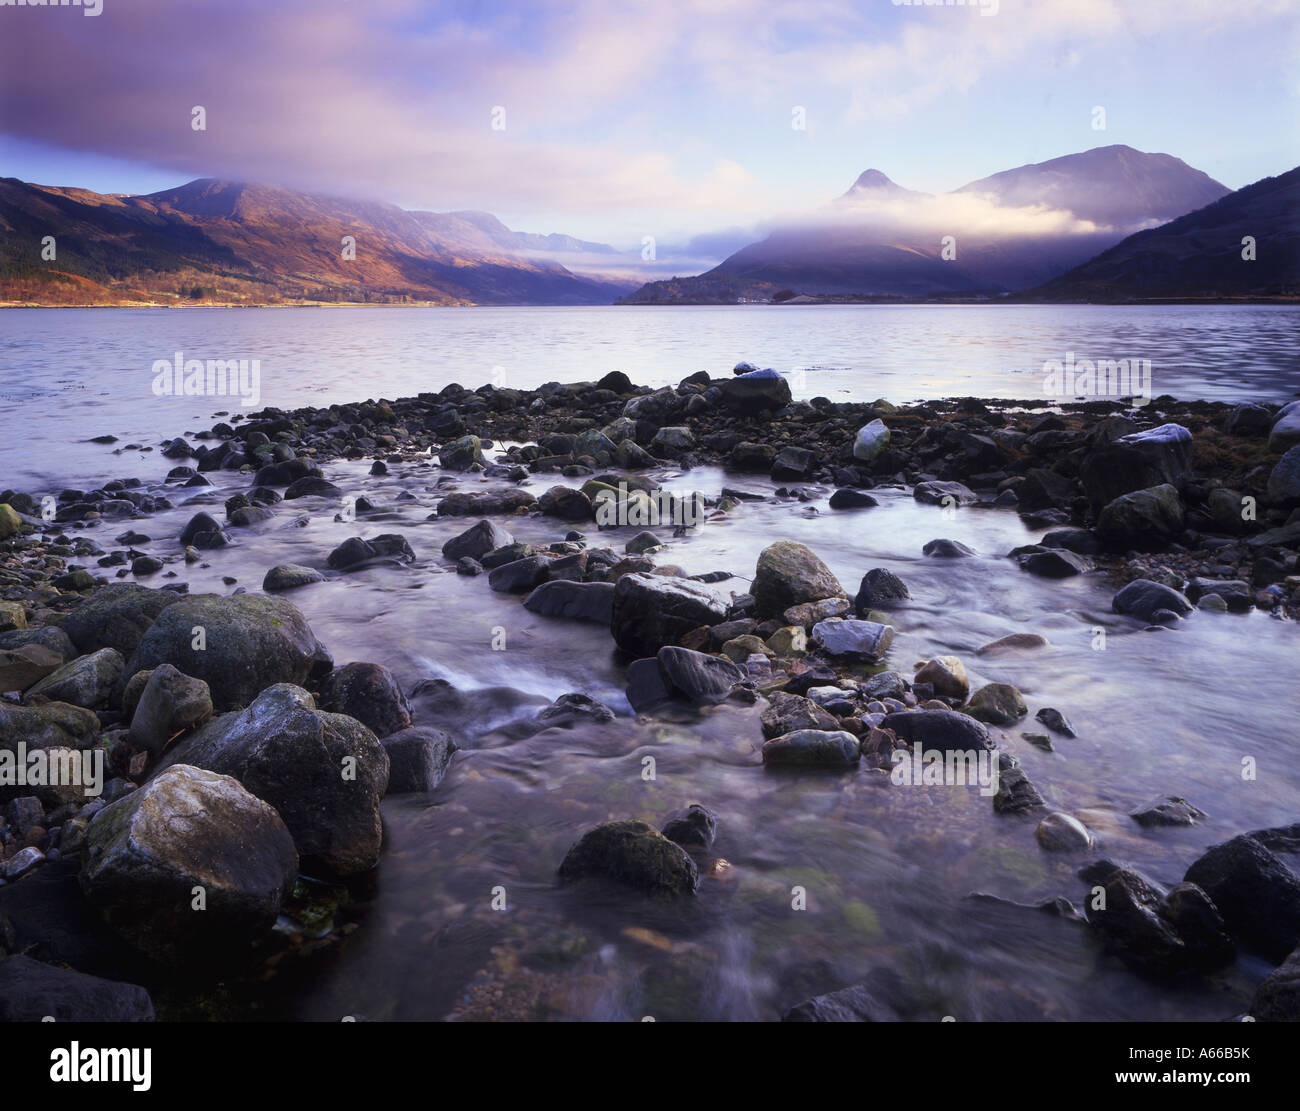 The Pap of Glencoe and Loch Leven - Stock Image